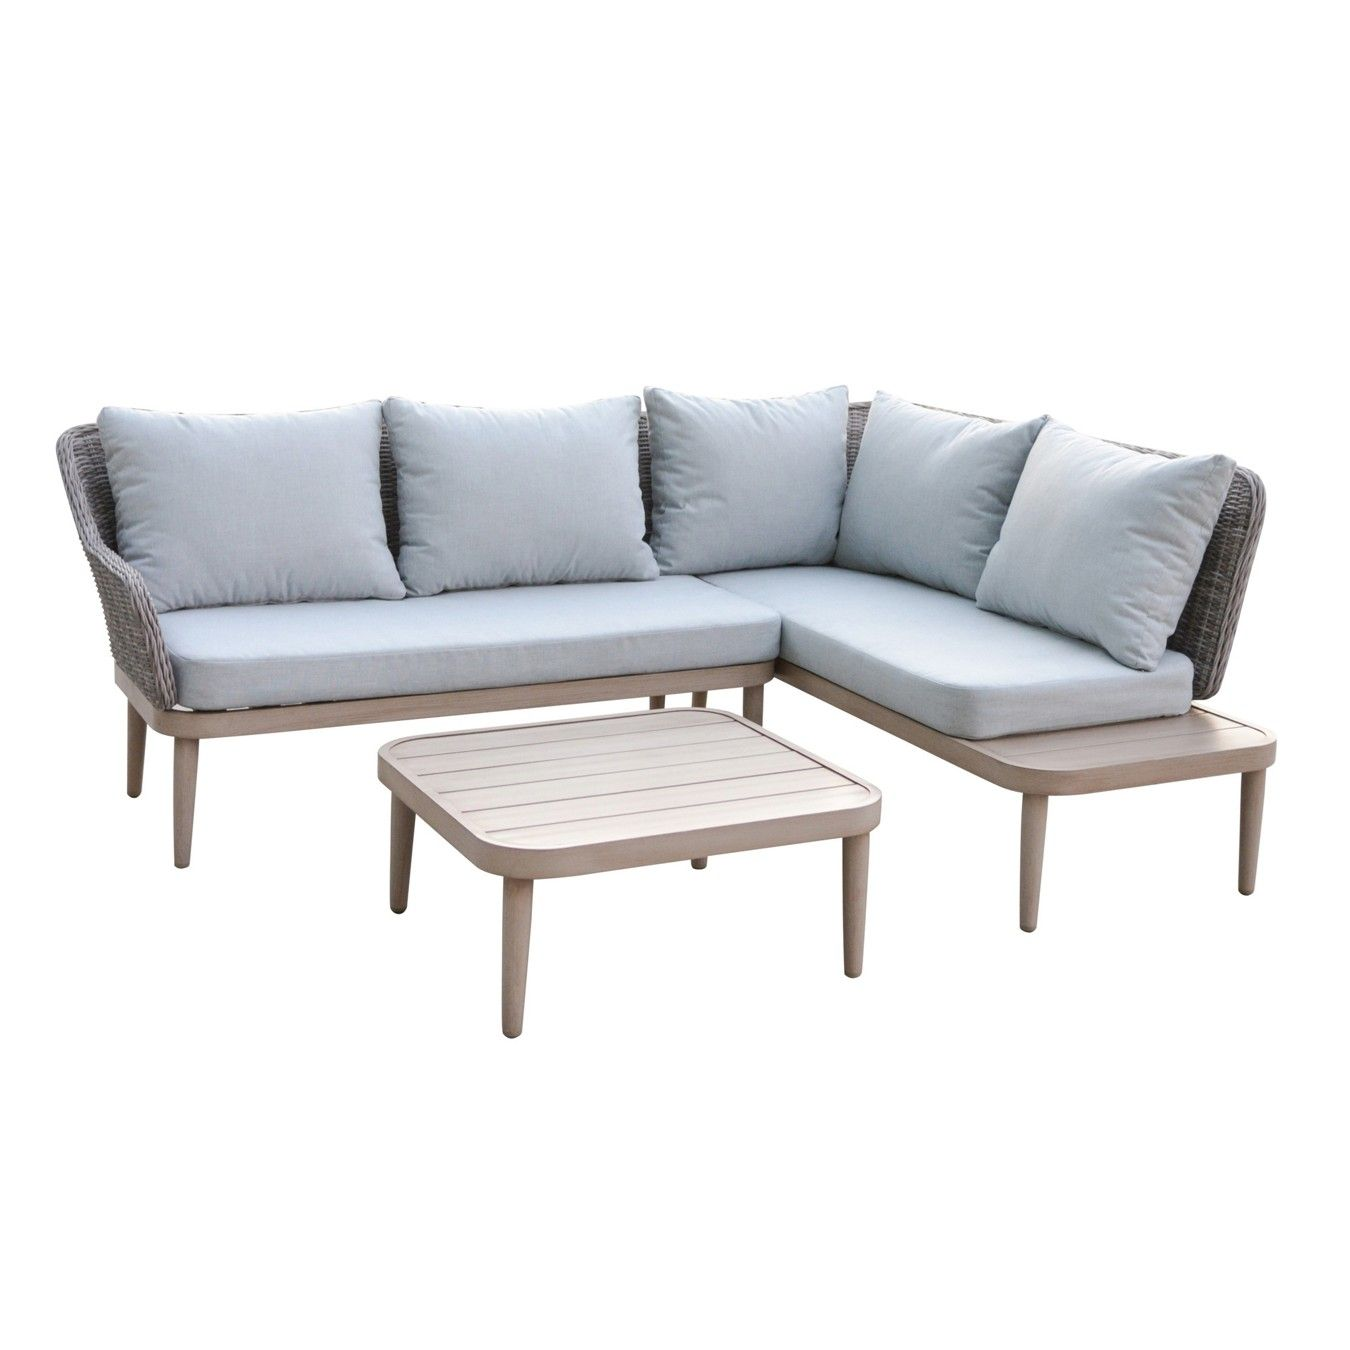 Palmira Corner Sofa With Side Table Outdoor Sectional Sofa